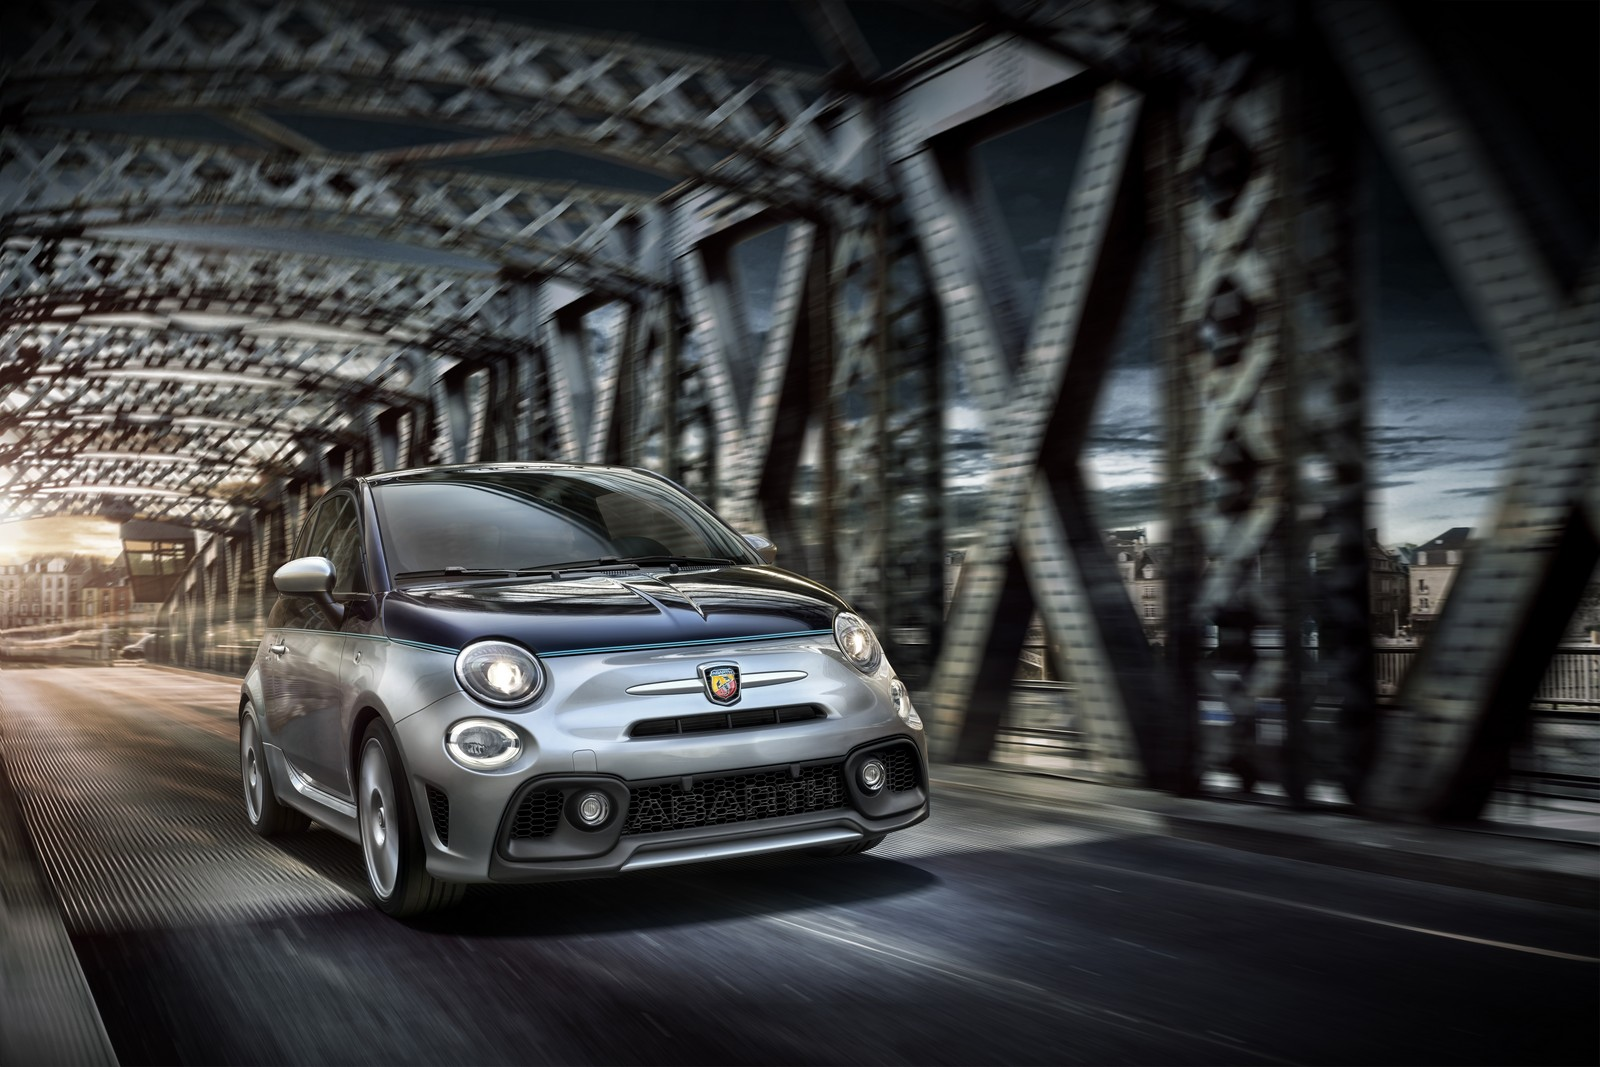 abarth 695 rivale le meilleur des deux mondes blog automobile. Black Bedroom Furniture Sets. Home Design Ideas